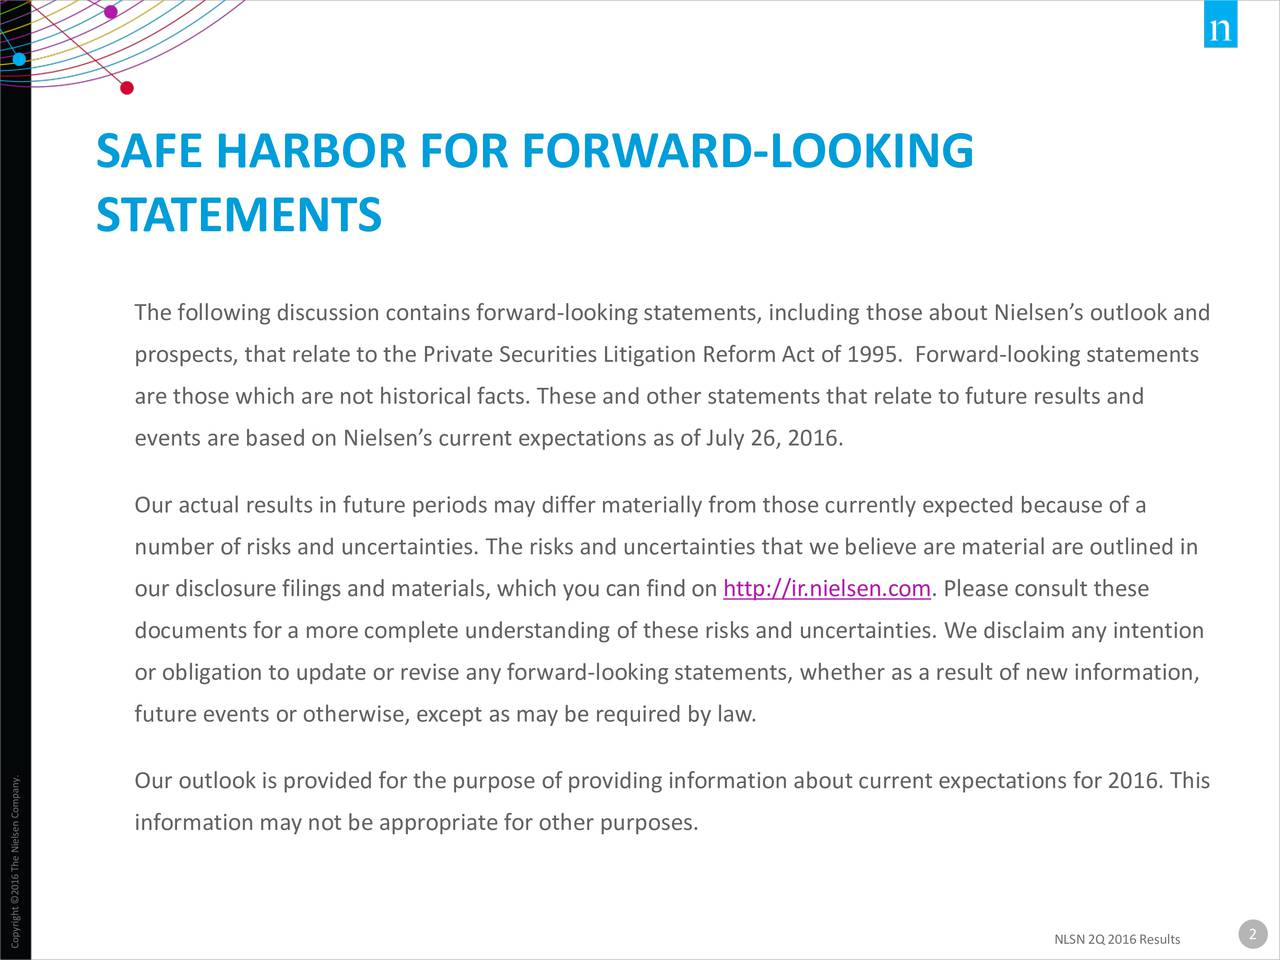 STATEMENTS The following discussion contains forward-looking statements, including those about Nielsens outlook and prospects, that relate to the Private Securities Litigation ReformAct of 1995. Forward-looking statements are those which are not historical facts. These and other statements that relate to future results and events are based on Nielsens current expectations as of July 26, 2016. Our actual results in future periods may differ materially from those currently expected because of a number of risks and uncertainties. The risks and uncertainties that we believe are material are outlined in our disclosure filings and materials, which you can find on http://ir.nielsen.com. Please consult these documents for a more complete understanding of these risks and uncertainties. We disclaim any intention or obligation to update or revise any forward-looking statements, whether as a result of new information, future events or otherwise, except as may be required by law. Our outlook is provided for the purpose of providing information about current expectations for 2016. This information may not be appropriate for other purposes. NLSN 2Q2016Results2